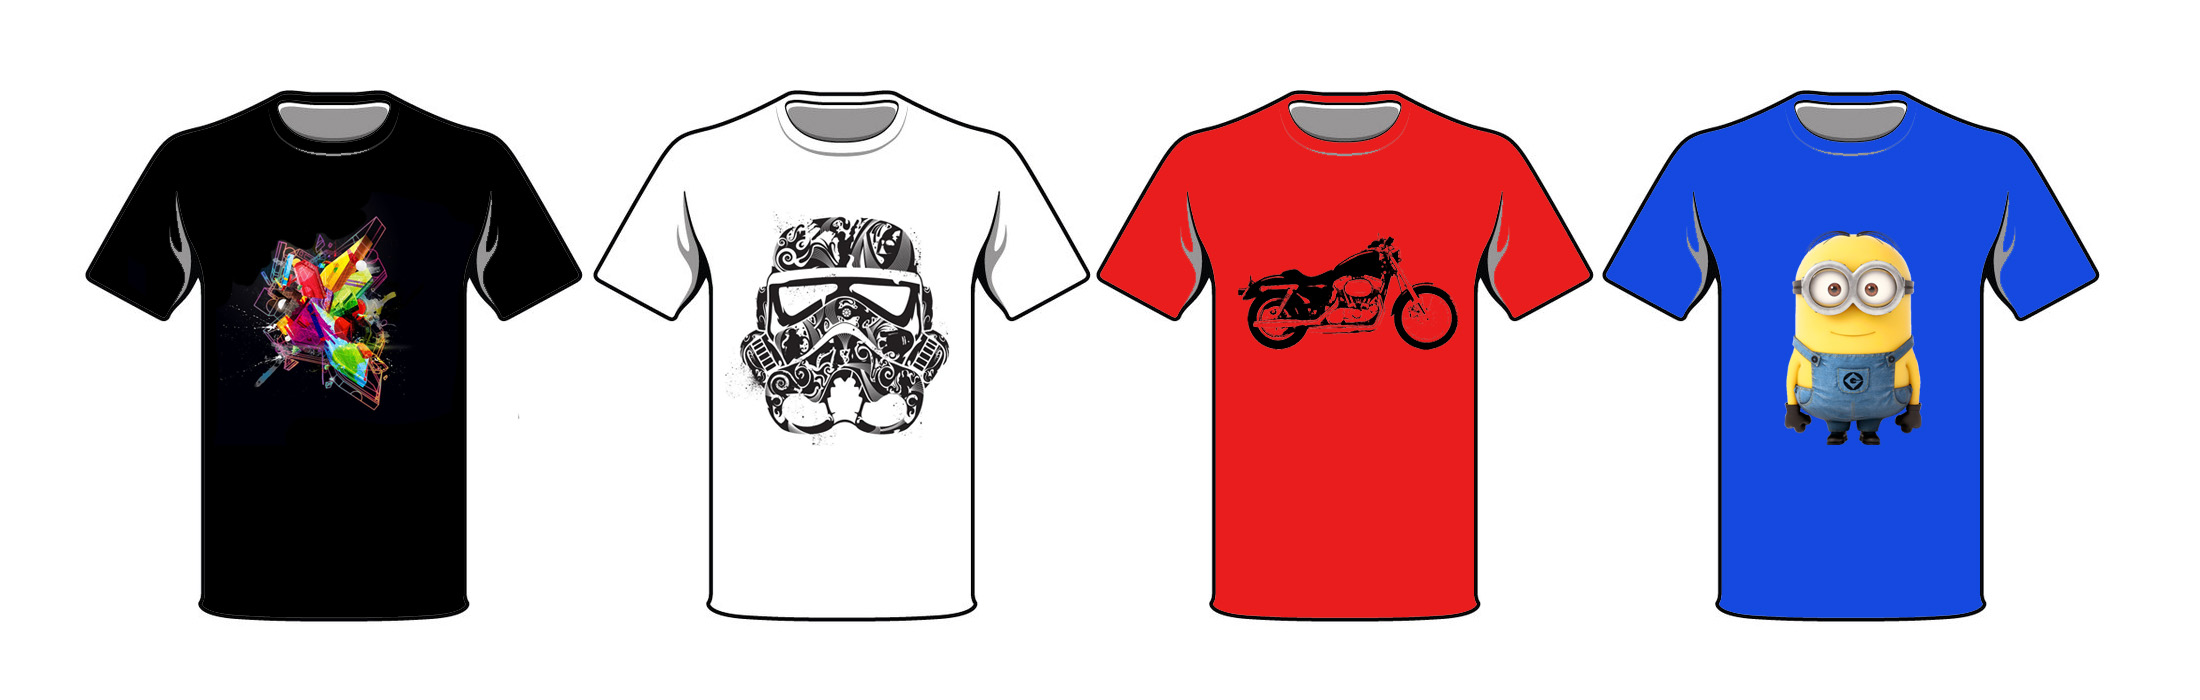 Shirt design nz - Email Your Design And Garment Requirements To Print Copywrite Co Nz